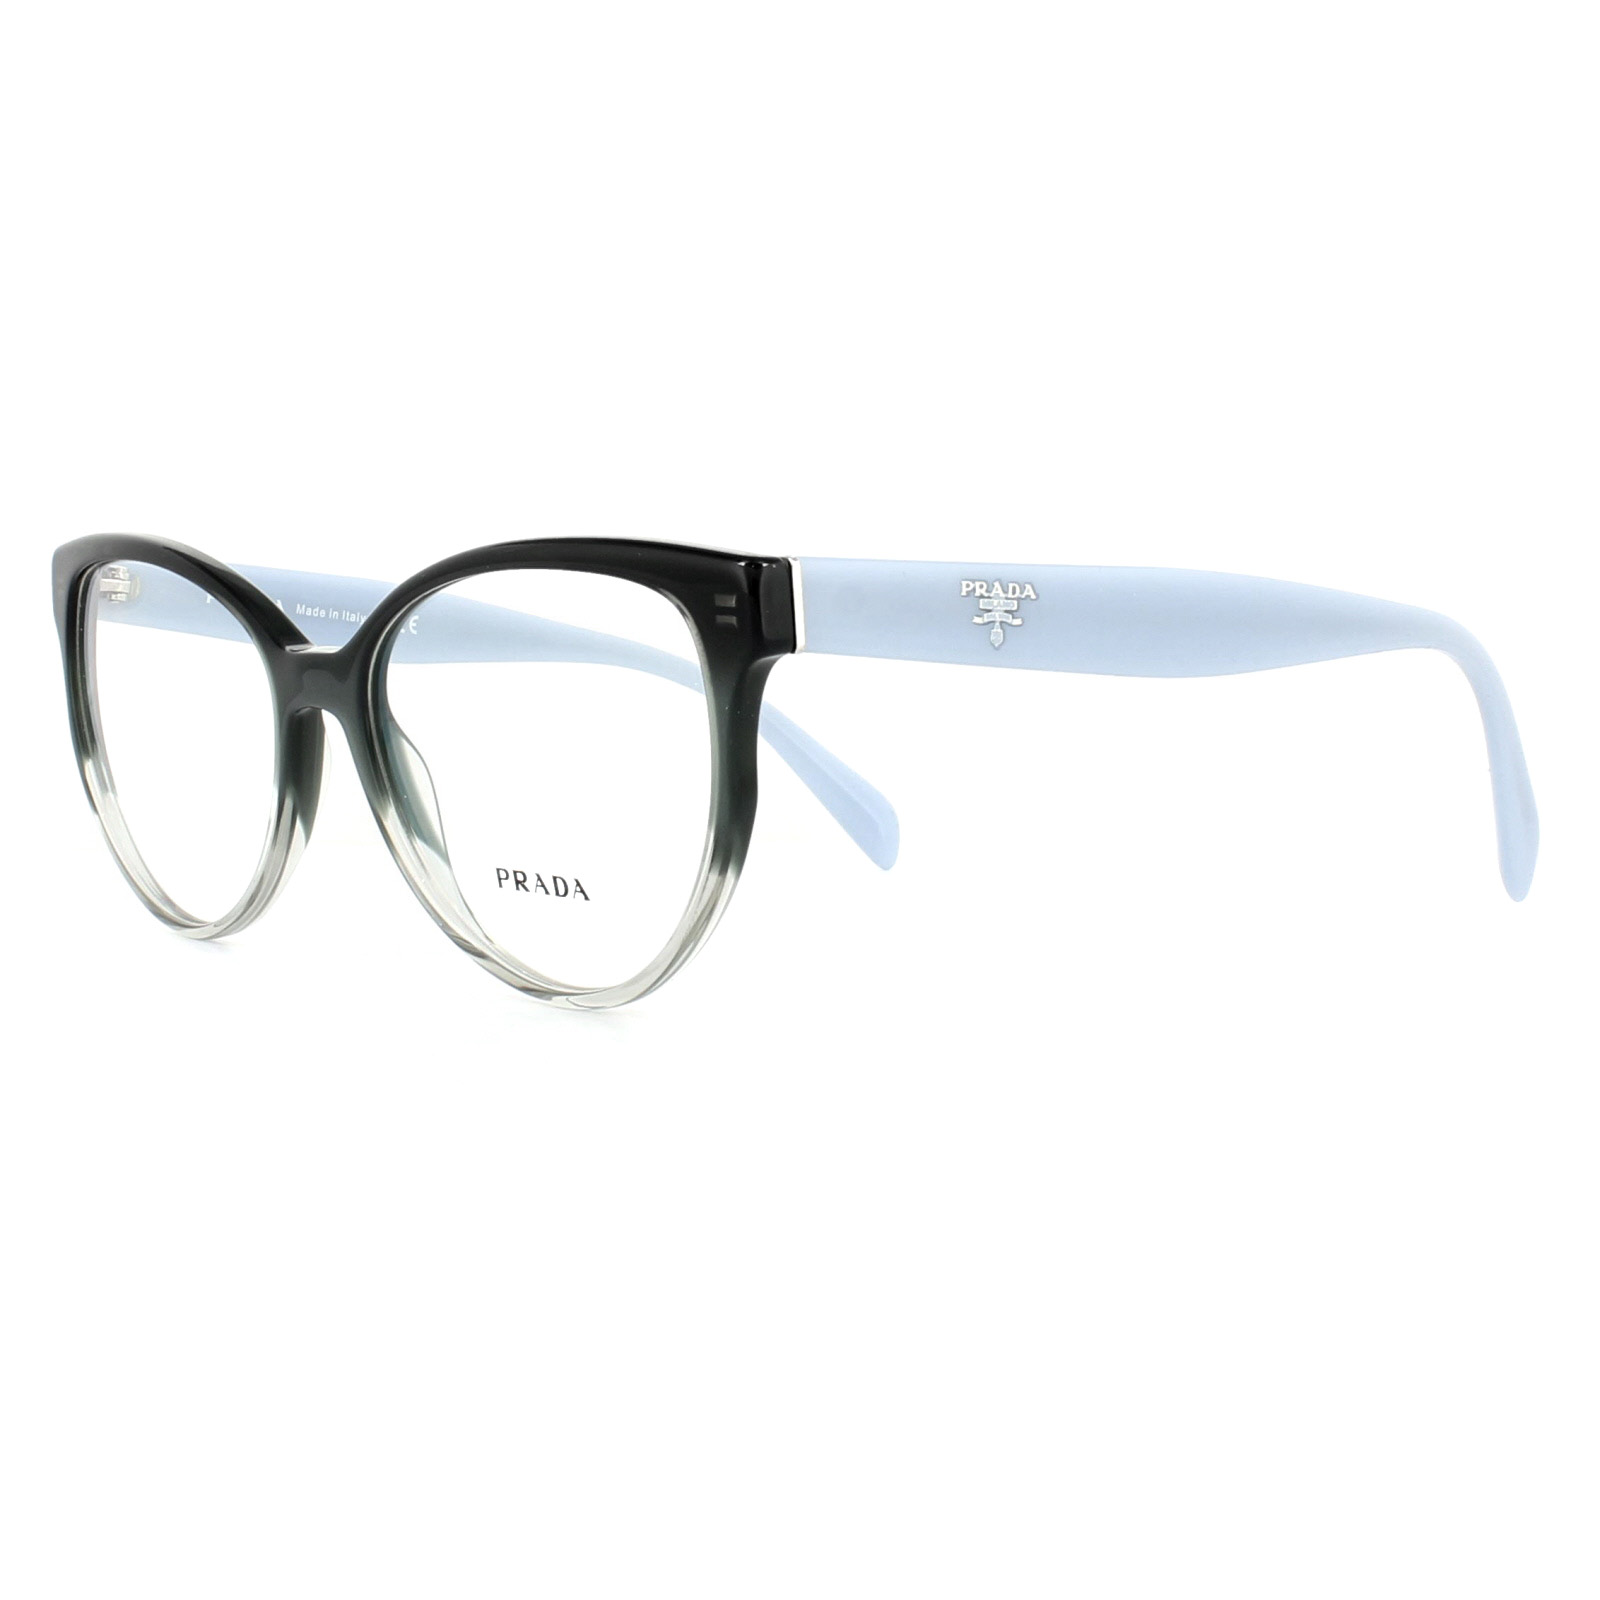 8ec57534e14 Sentinel Prada Glasses Frames PR01UV VX41O1 Gradient Grey 54mm Womens